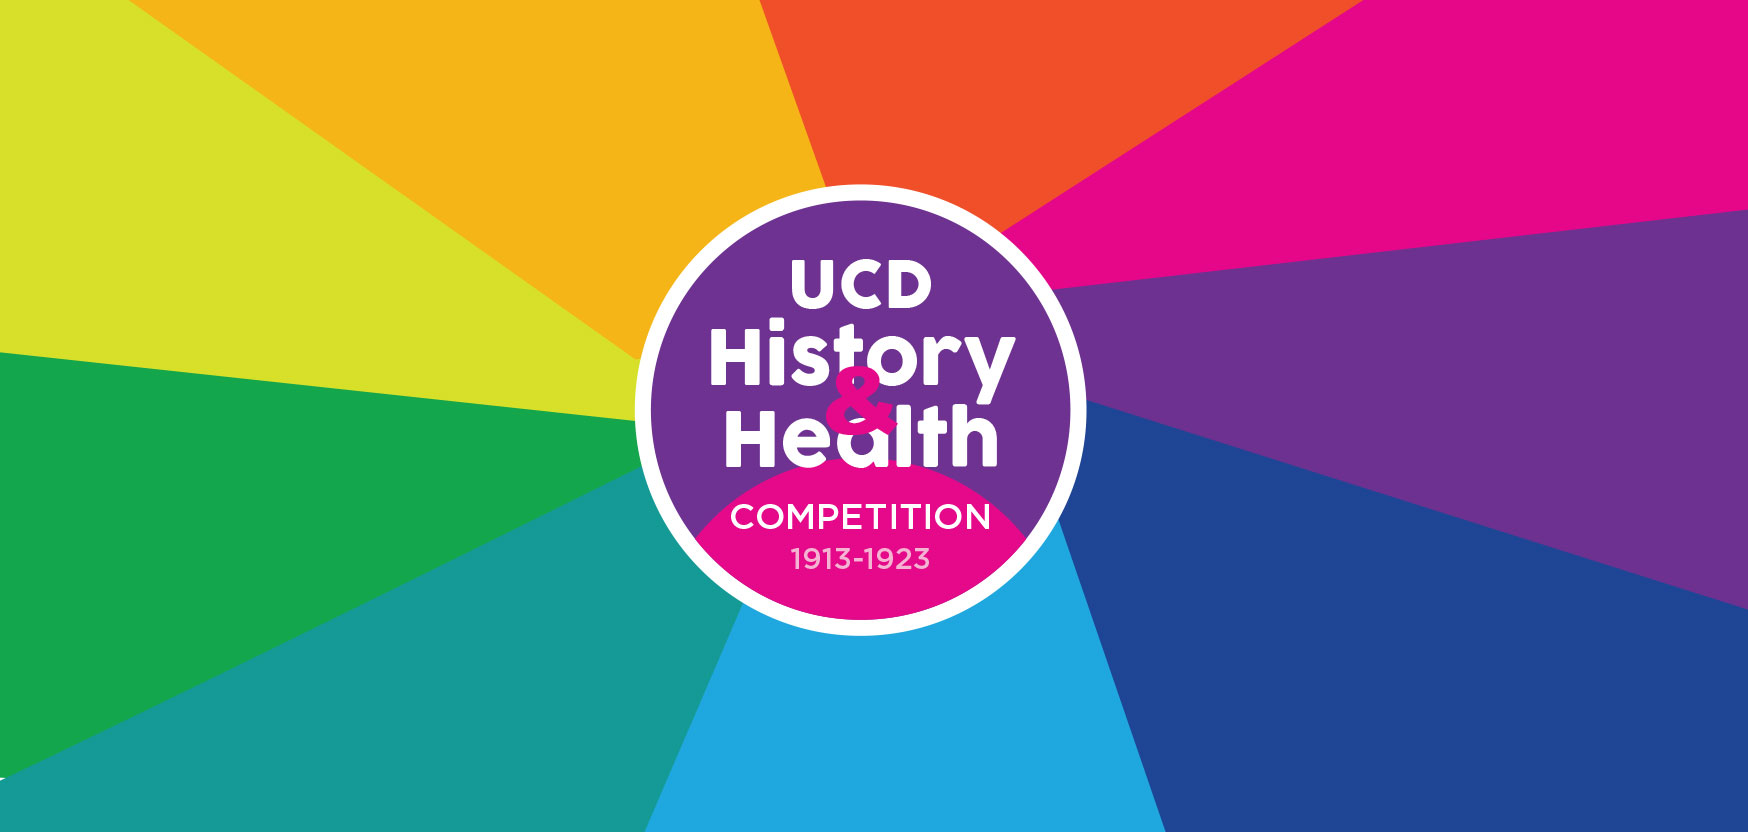 UCD-History-and-Health-Competition-web-banner2-1